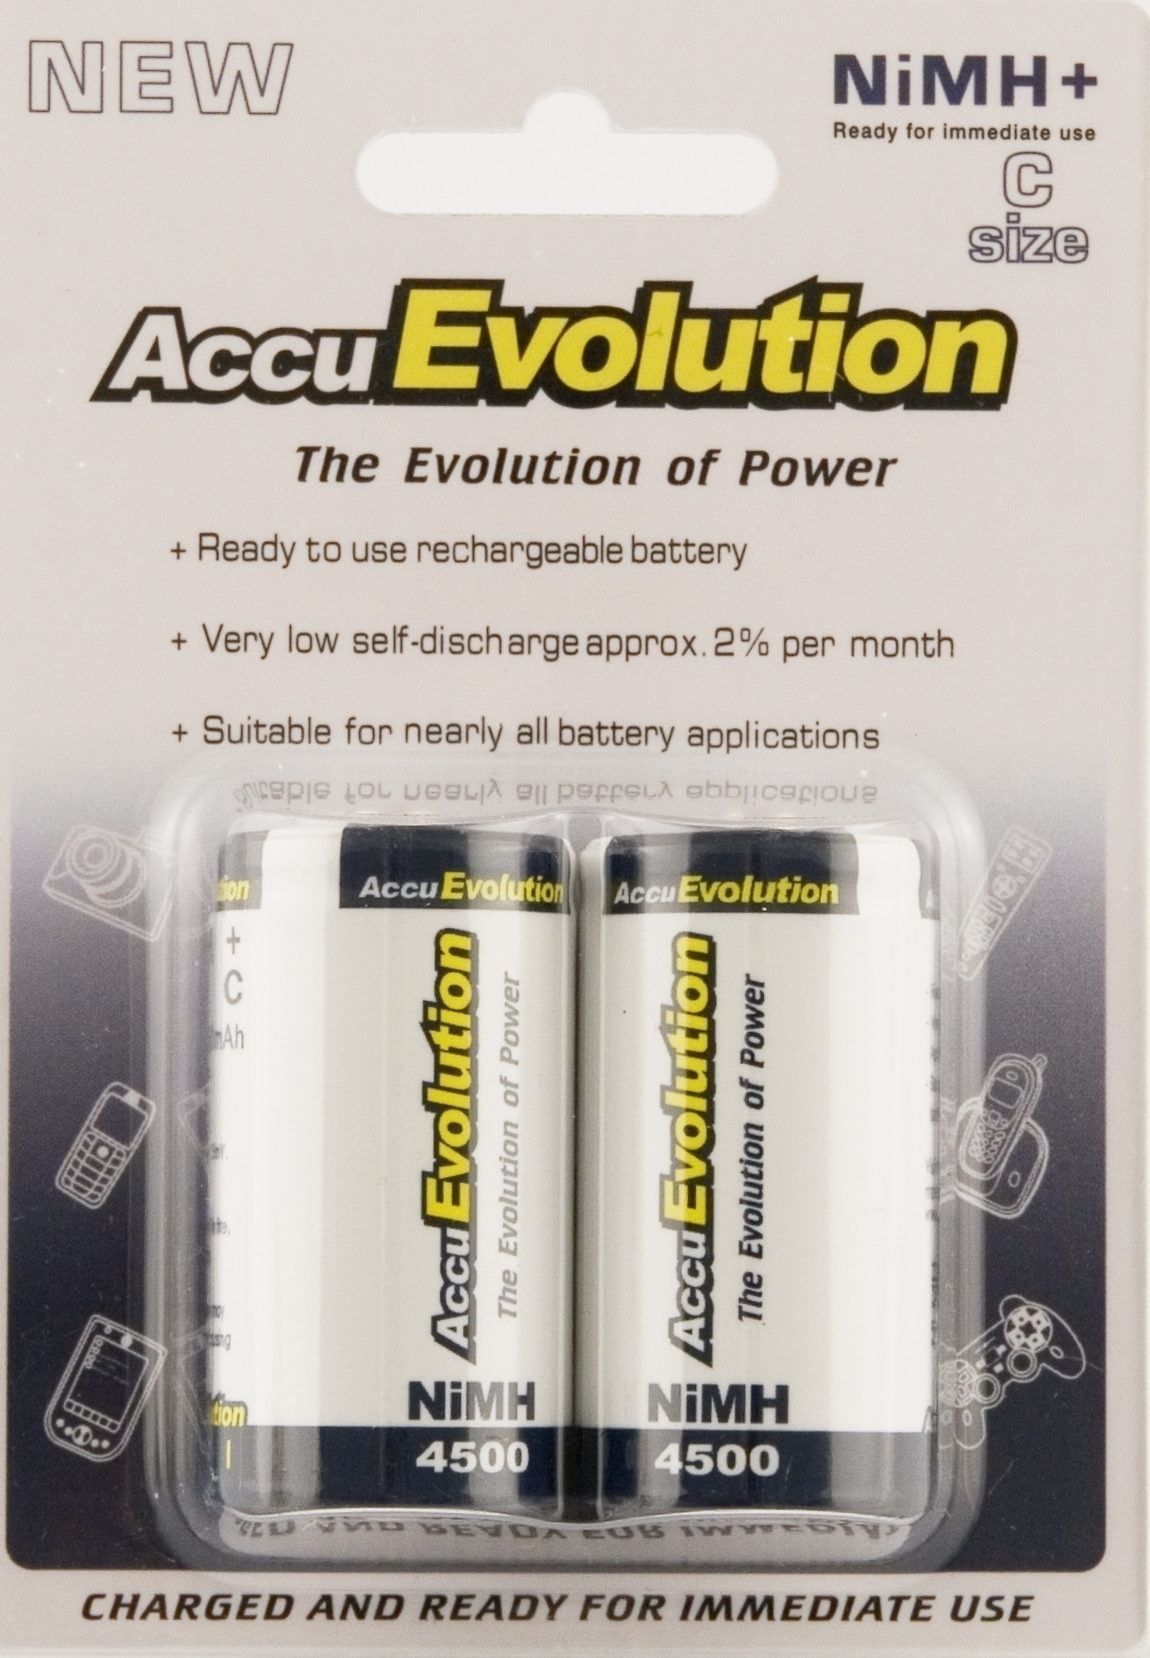 AccuEvolution C Cell 4500 NiMH Rechargeable Battery, 2 Pack